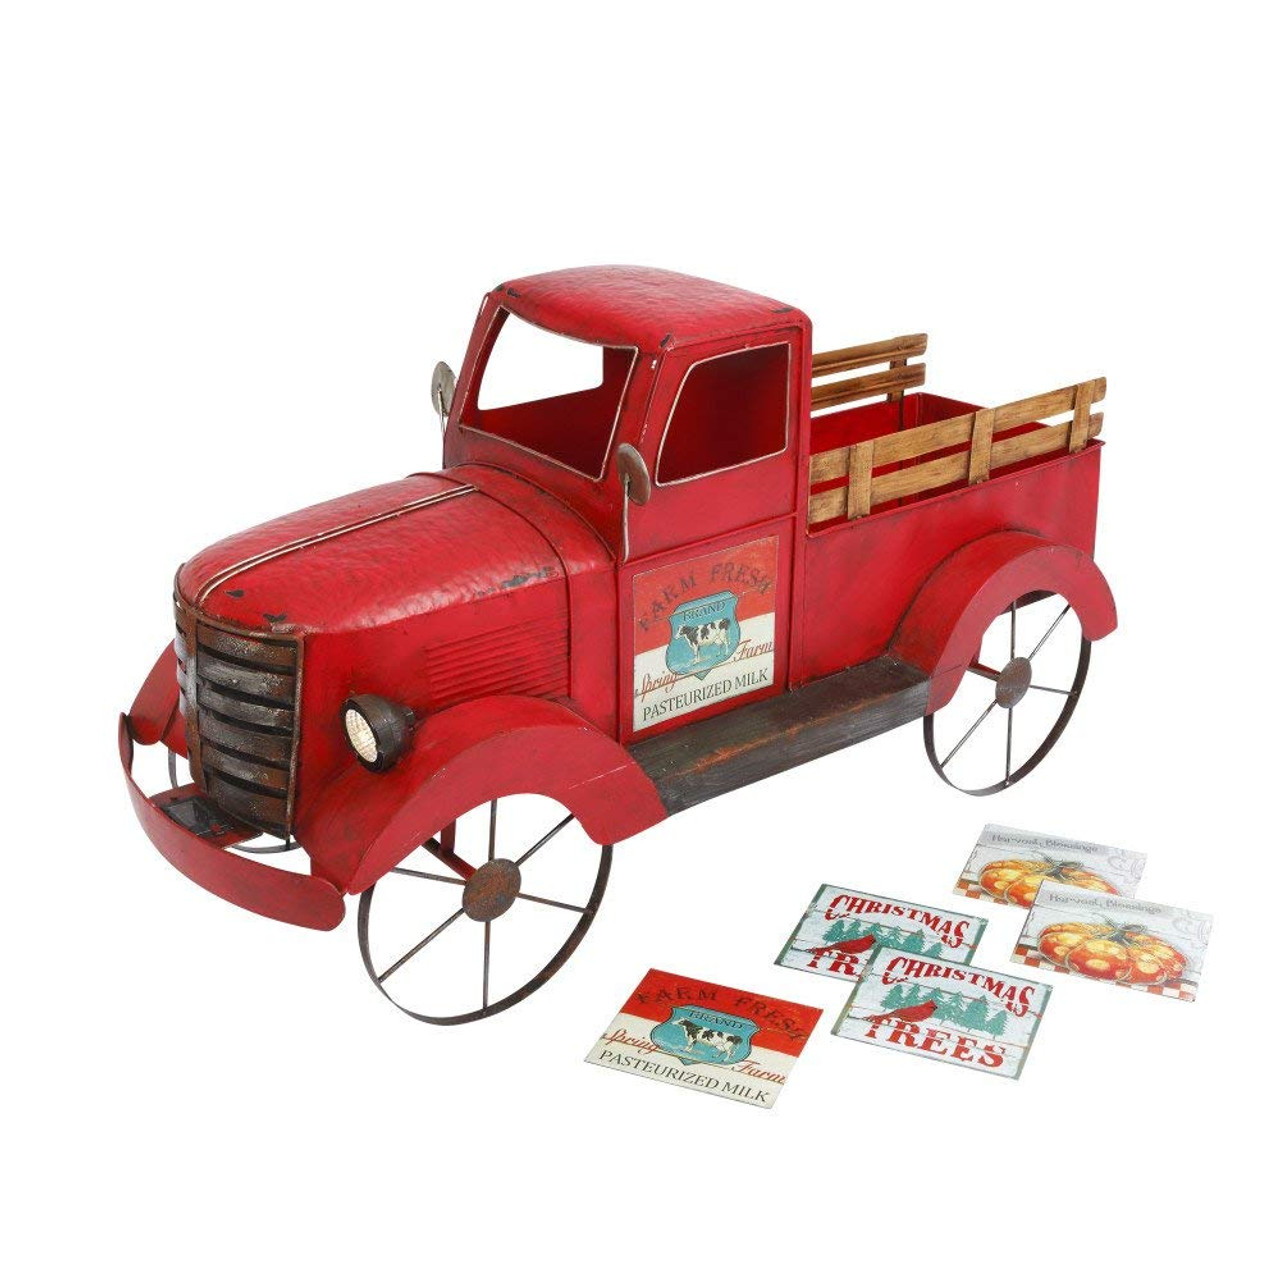 Red Christmas Truck.Large Metal Red Truck 42 Inches With Solar Panel Headlights Indoor Outdoor